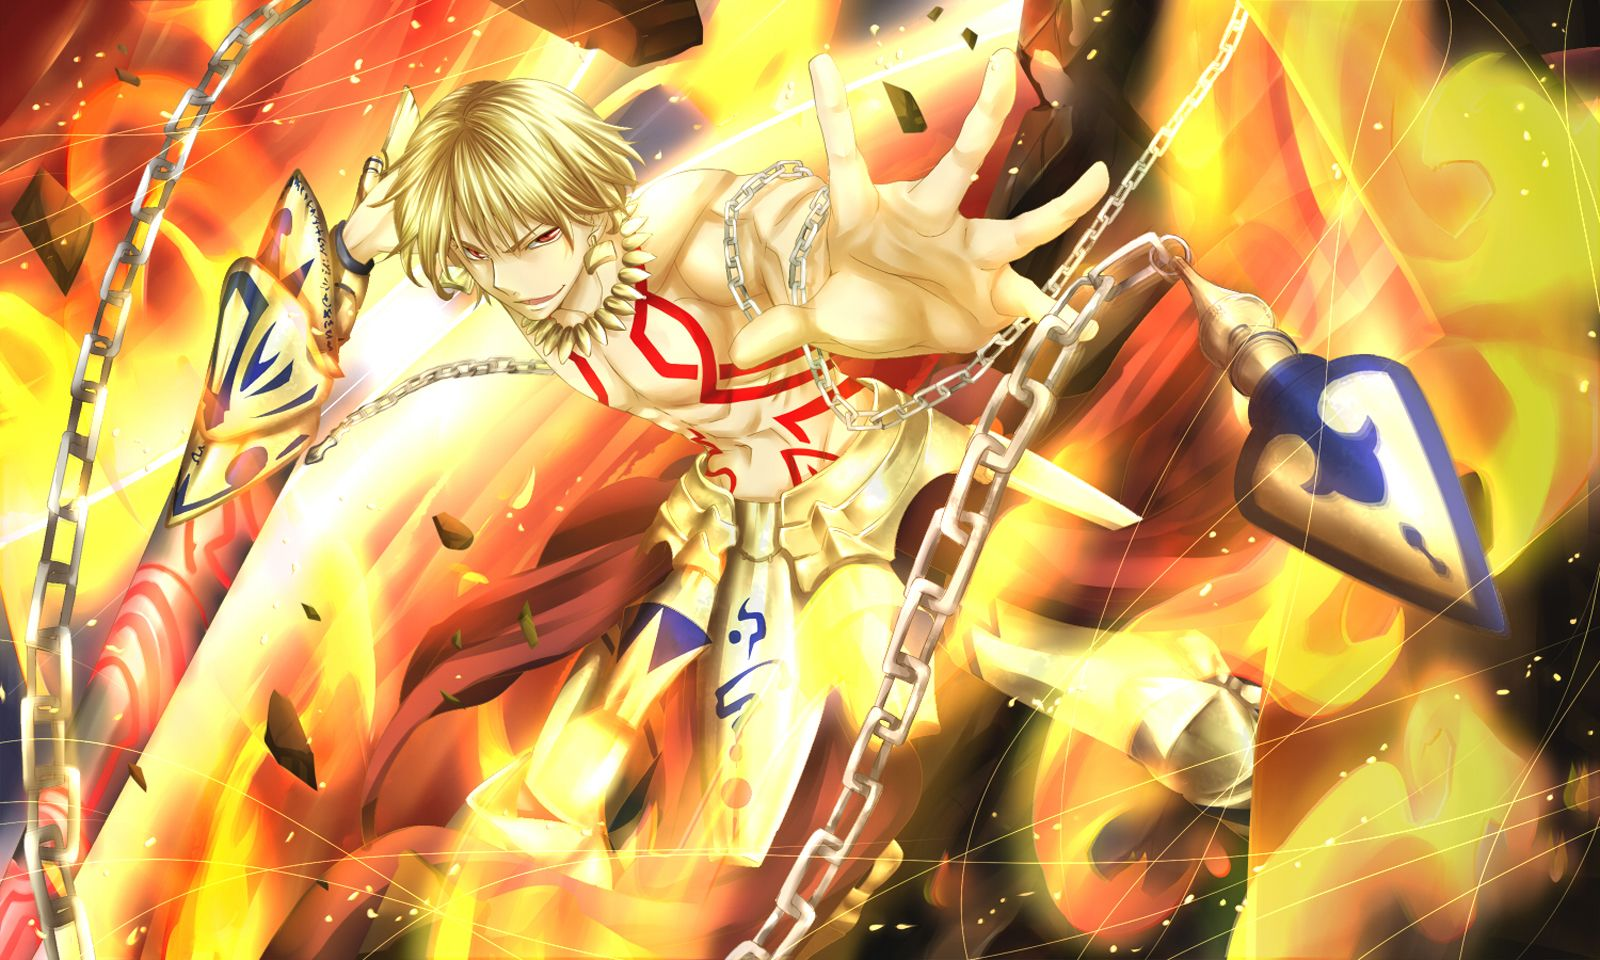 Gilgamesh Gilgamesh Fate Fate Stay Night Fate Zero